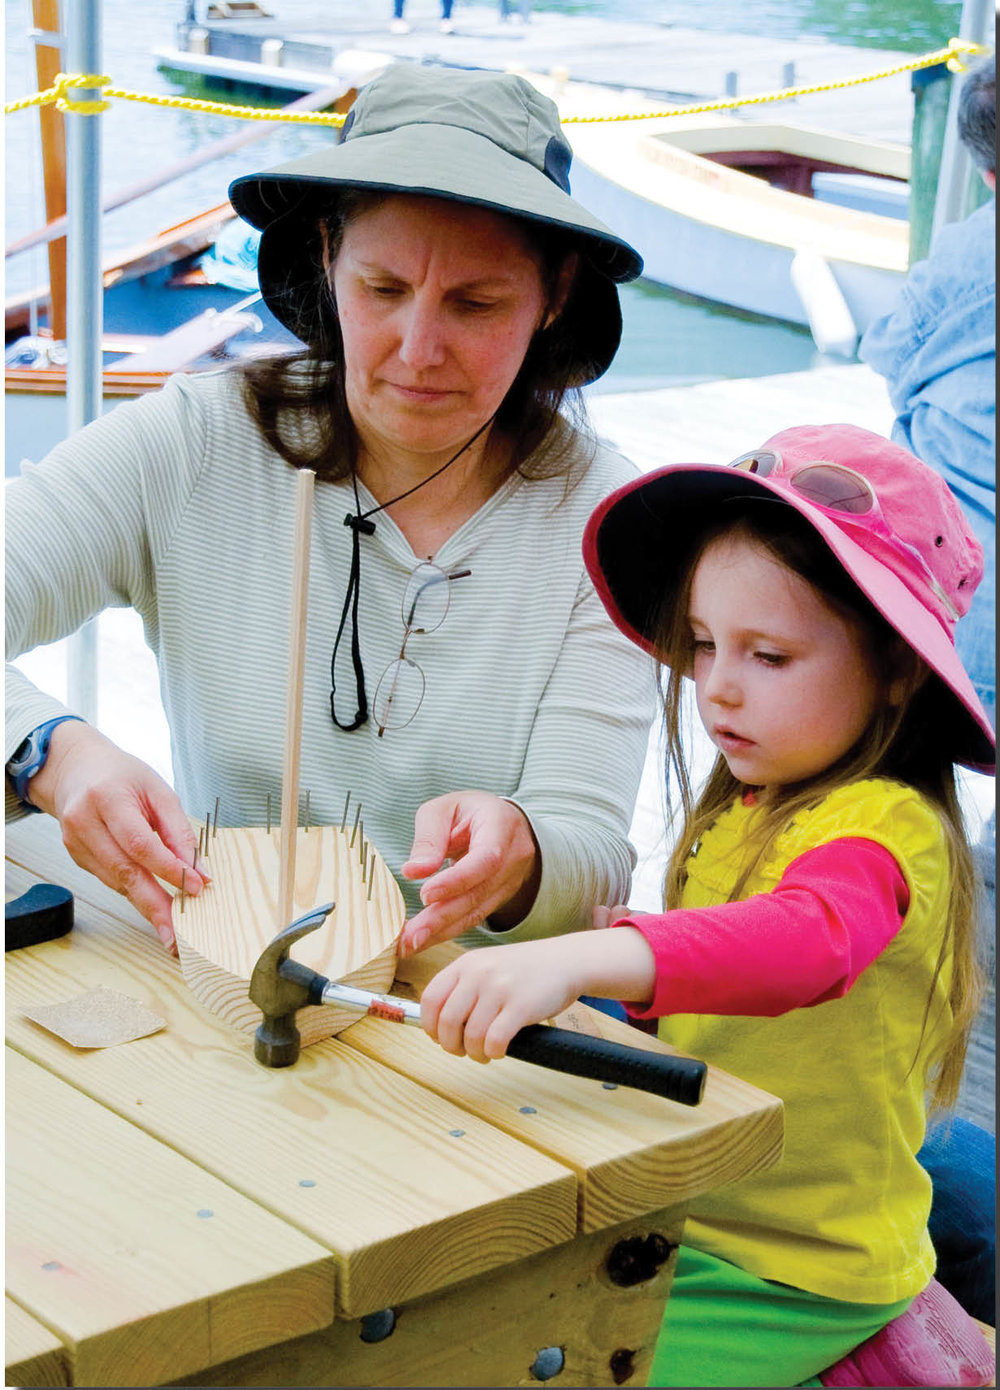 Toy boat building at the Festival.